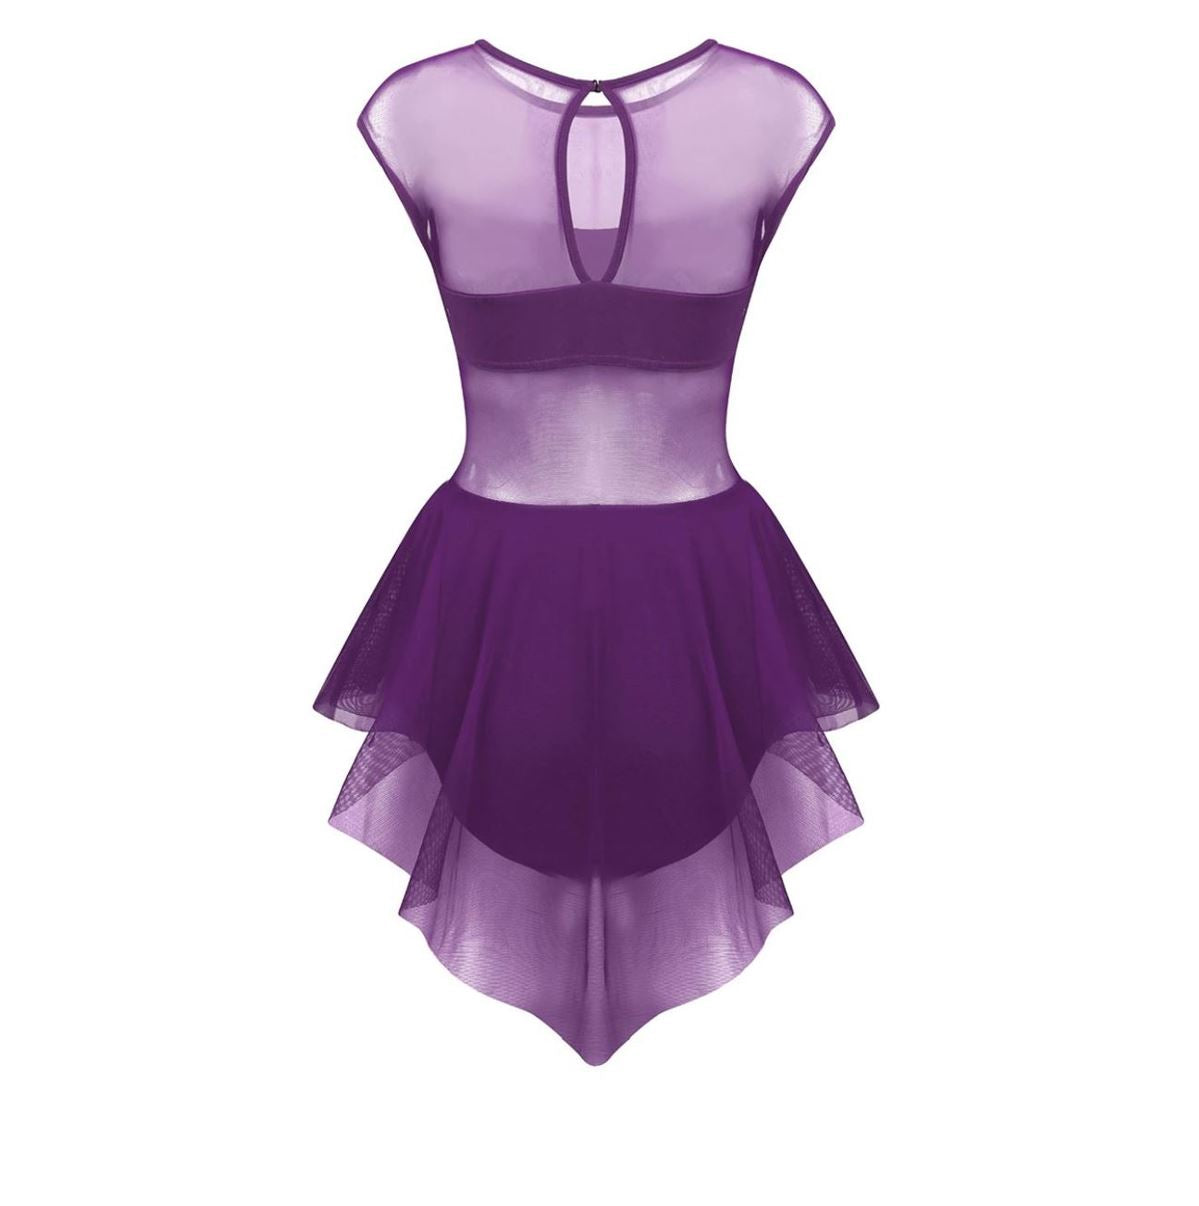 Purple in colour, back view of women's leotard with front cut out design, mesh skirt attached. Pas de bourree dancewear. Pasdebourreedancewear.